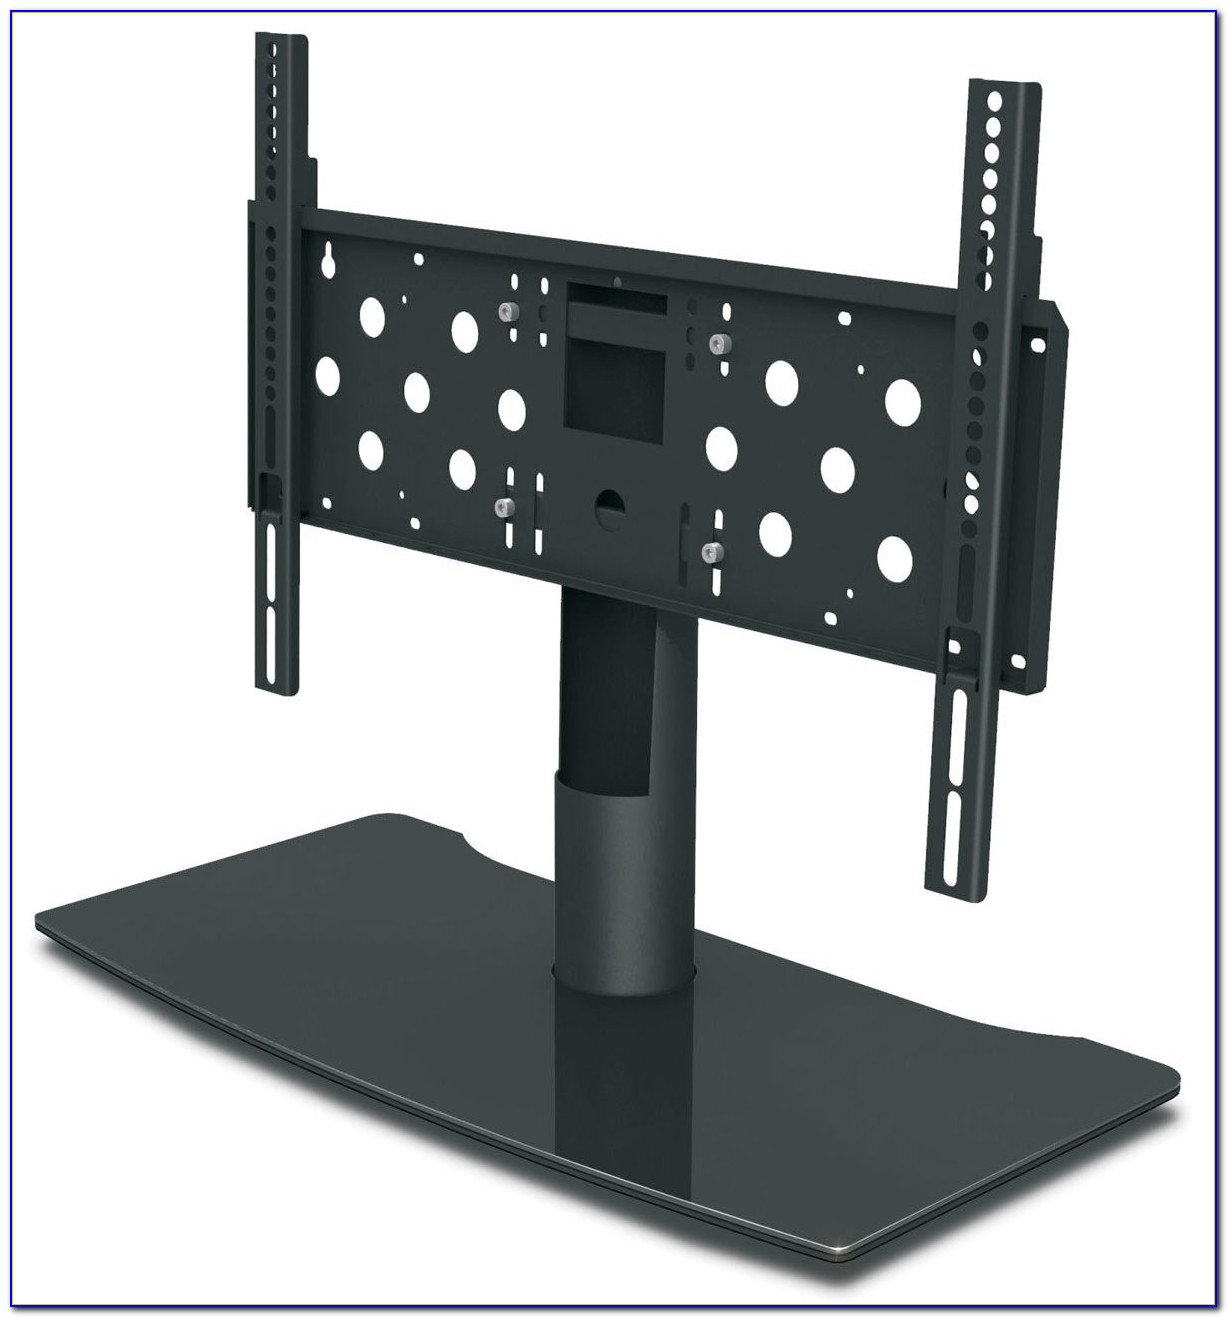 philips lcd tv tabletop stand download page home design ideas galleries home design ideas guide. Black Bedroom Furniture Sets. Home Design Ideas